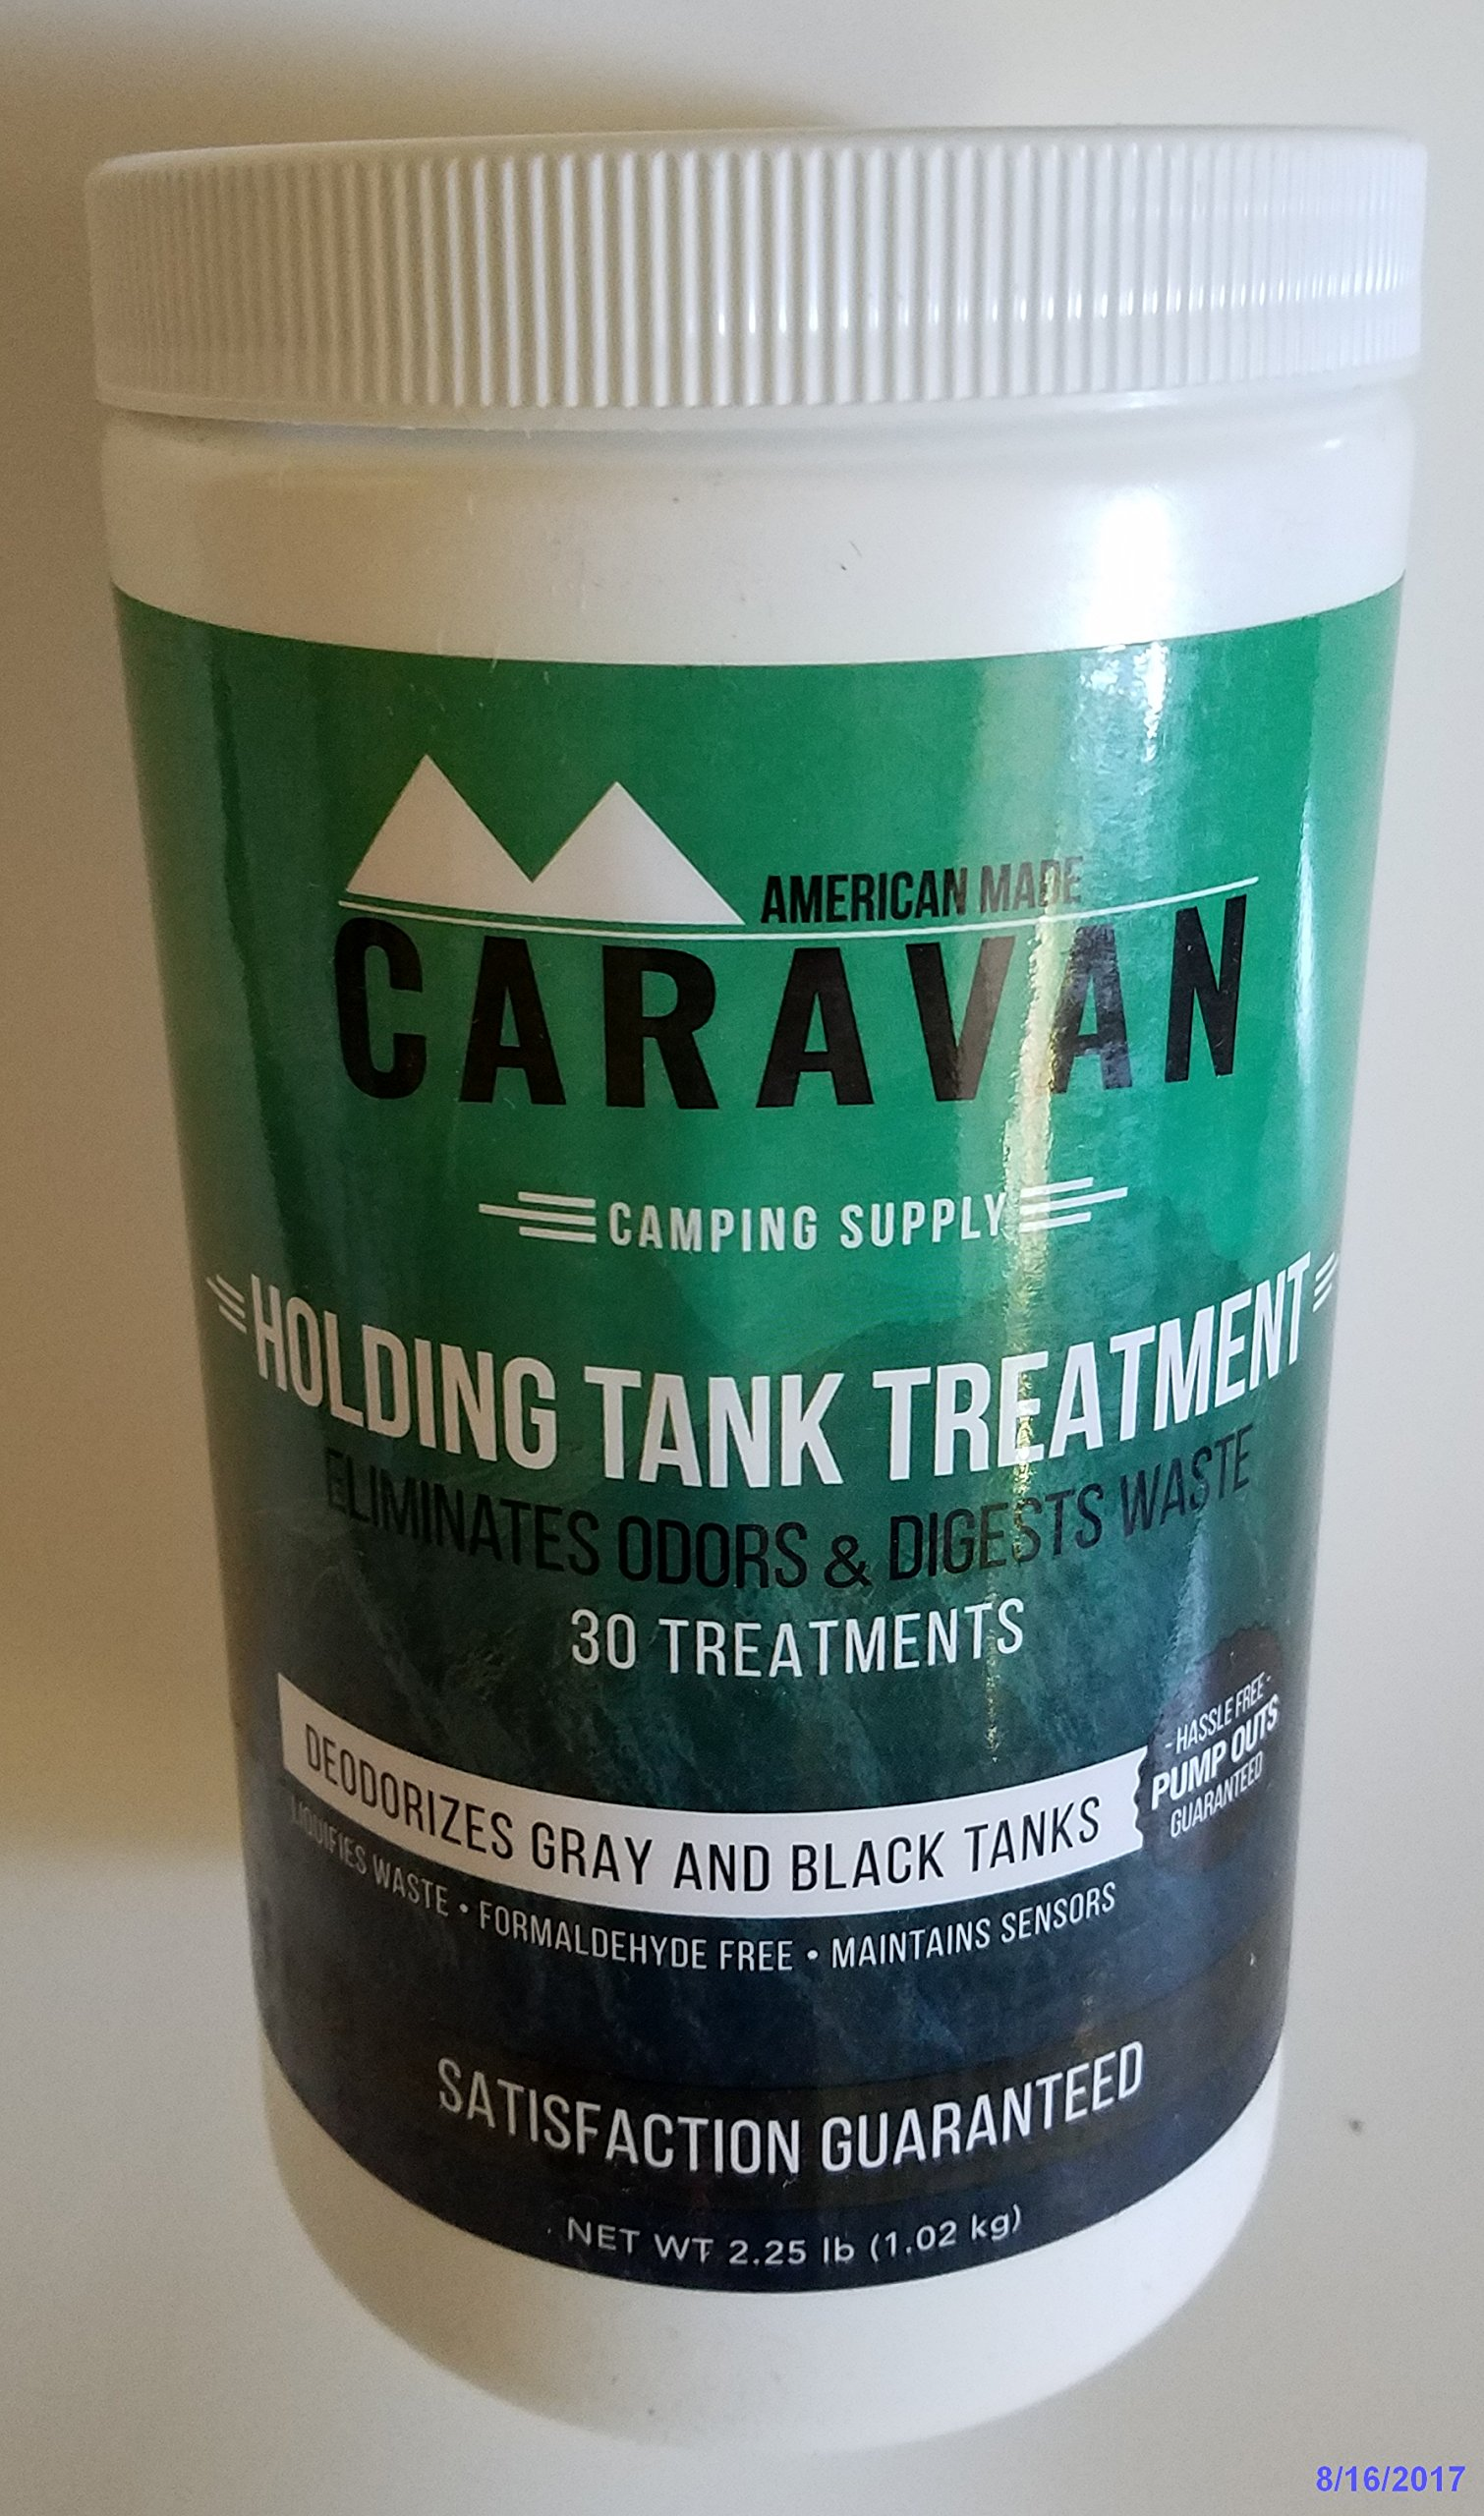 Caravan ''Full-timer's RV Holding Tank Treatment - Natural, eco-Friendly, probiotic Bacteria Enzyme Formula - New and Different Microbial-Based Approach to Eliminate Toilet Odor (30 Treatment Powder) by Caravan